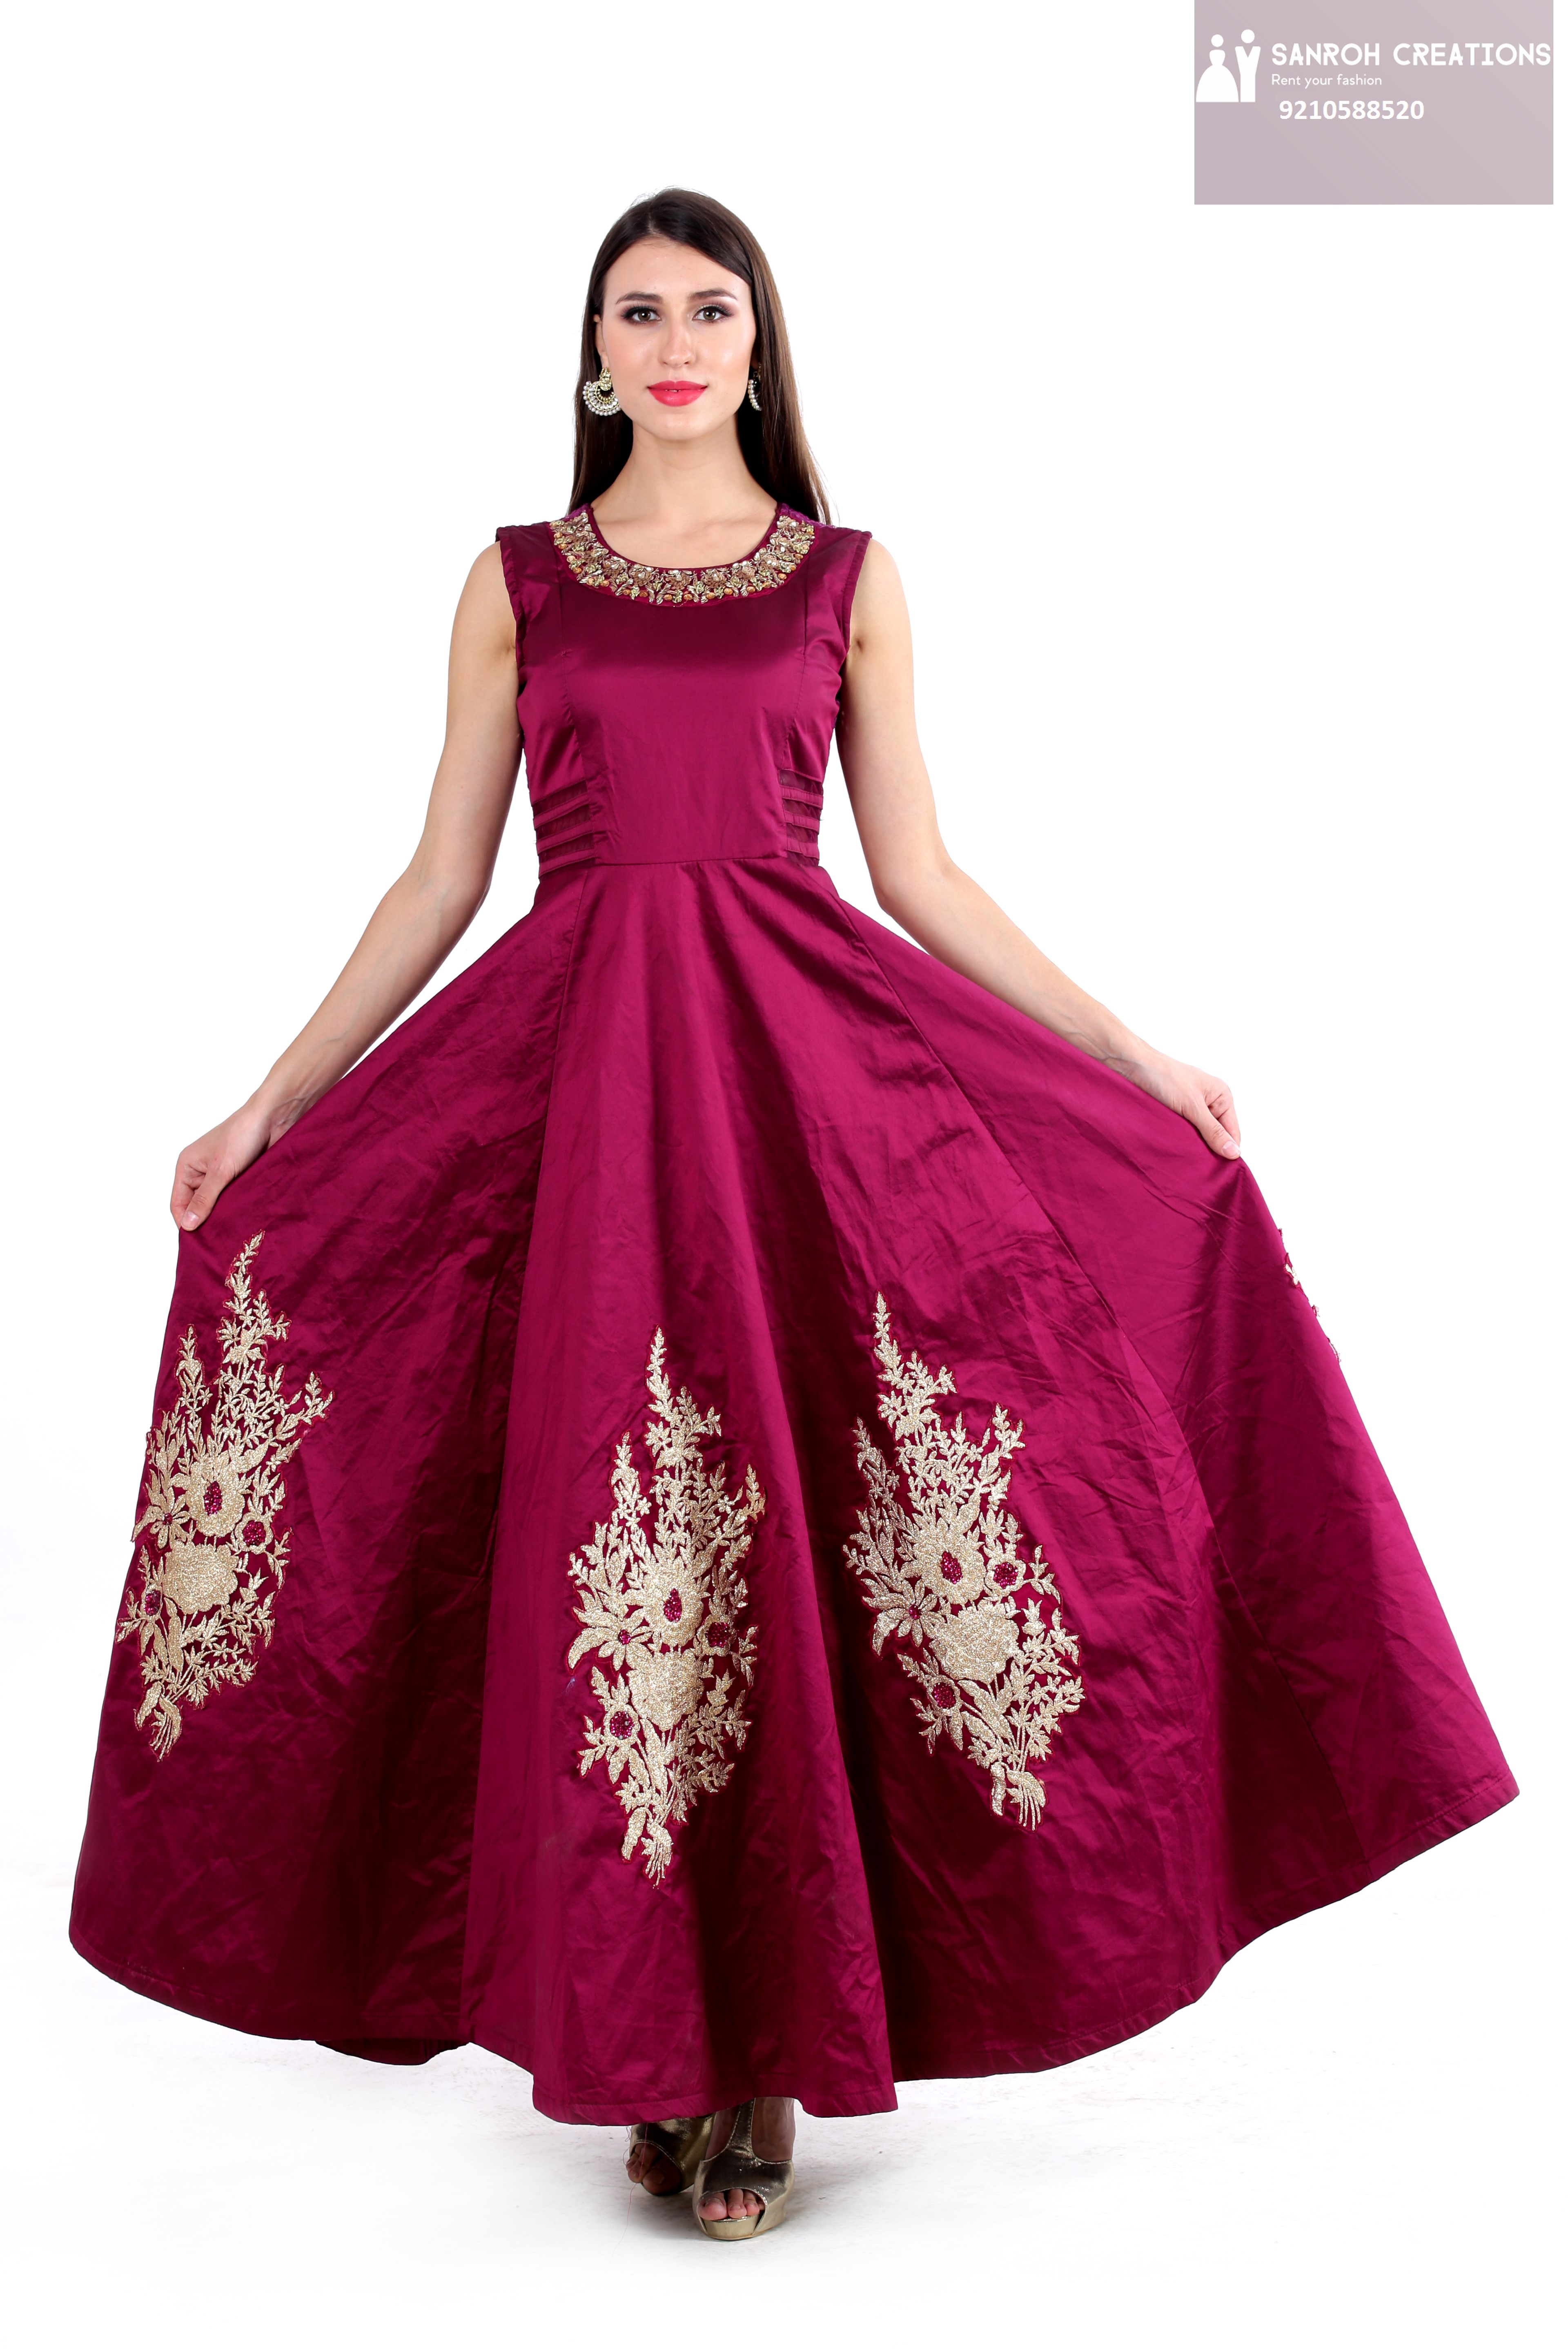 womens fancy dresses on rent in Gurgaon sector 50